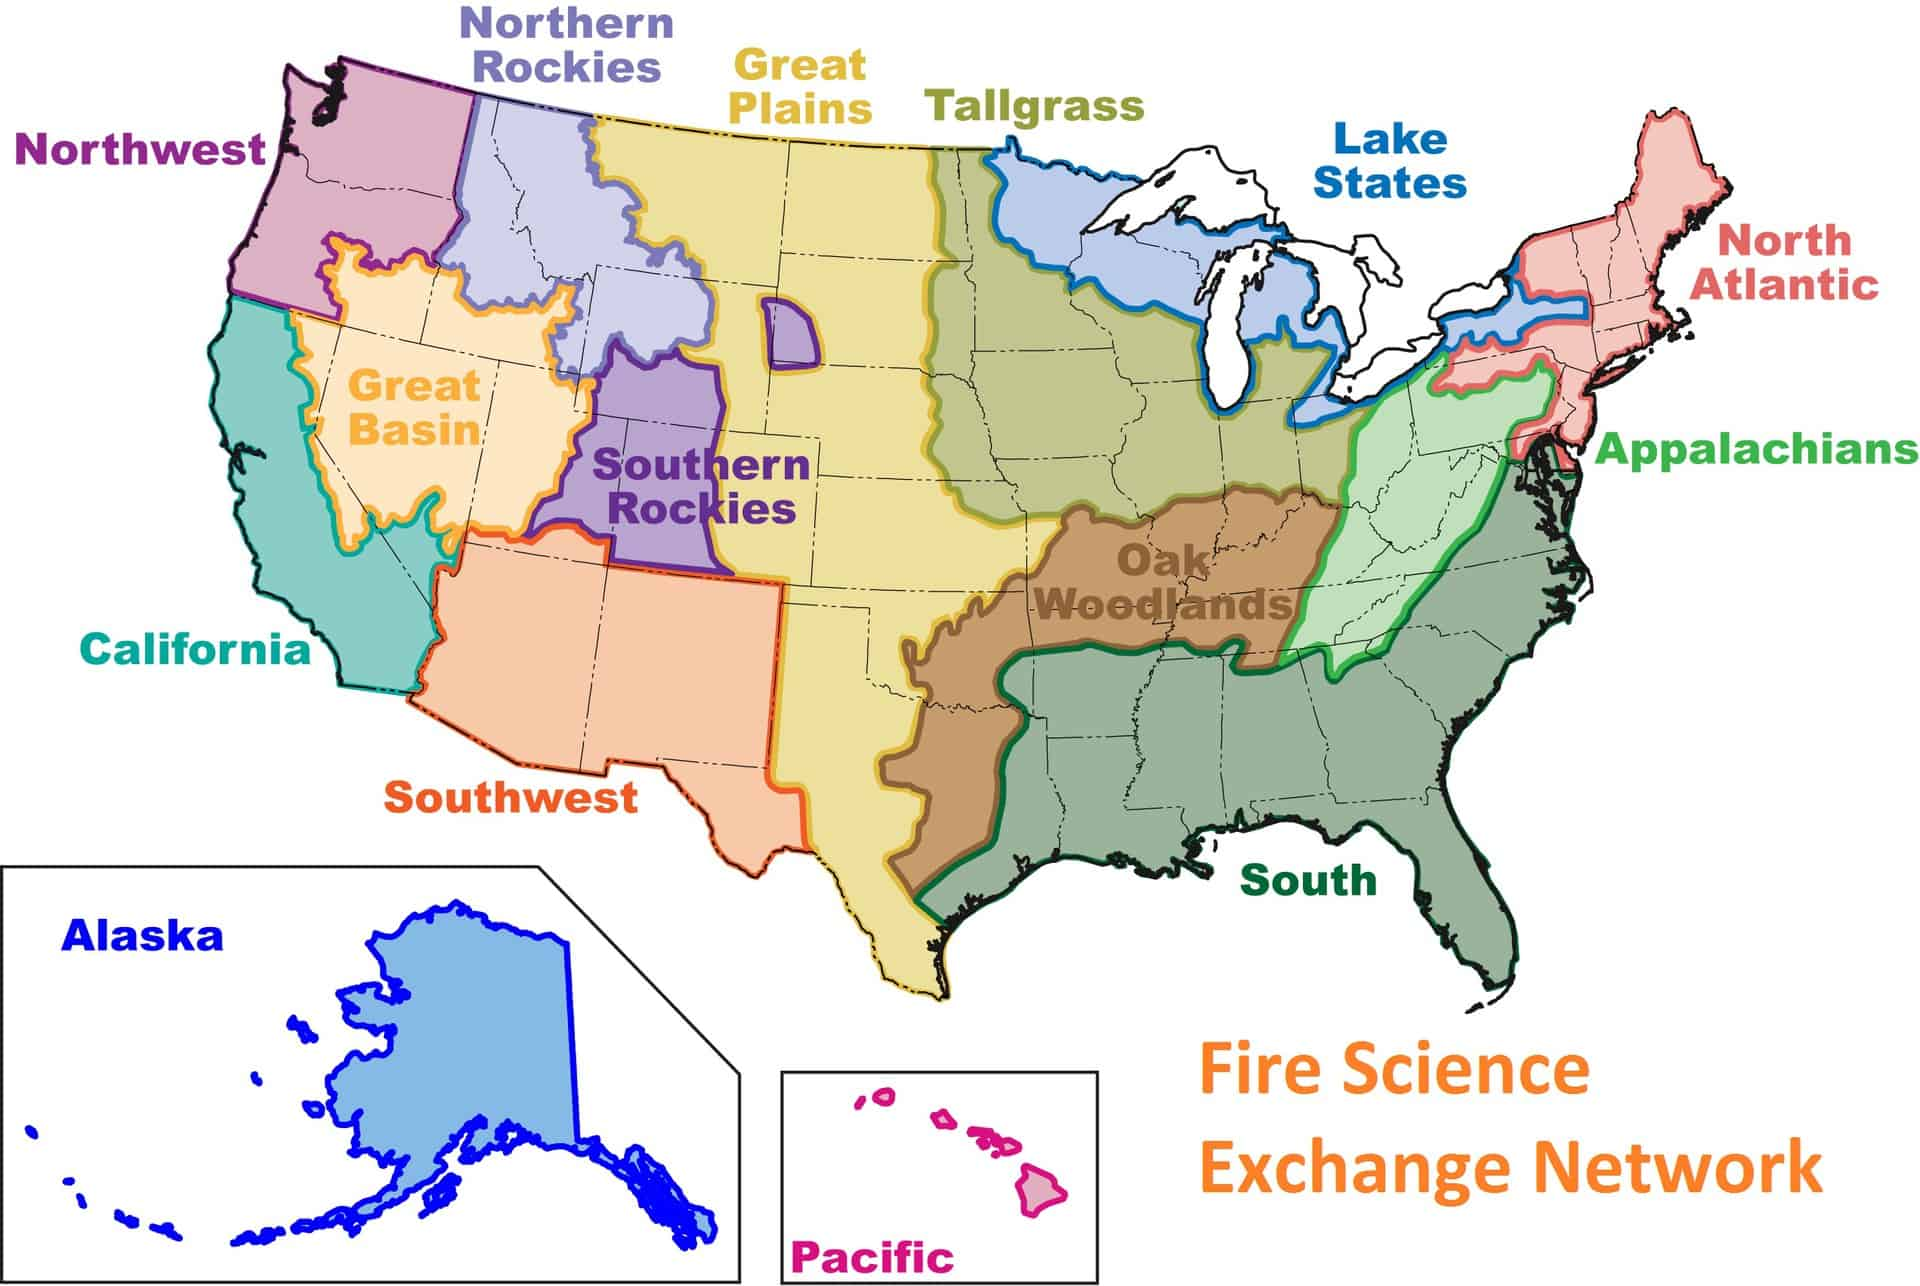 Fire Science what are the major subjects of issue assessments